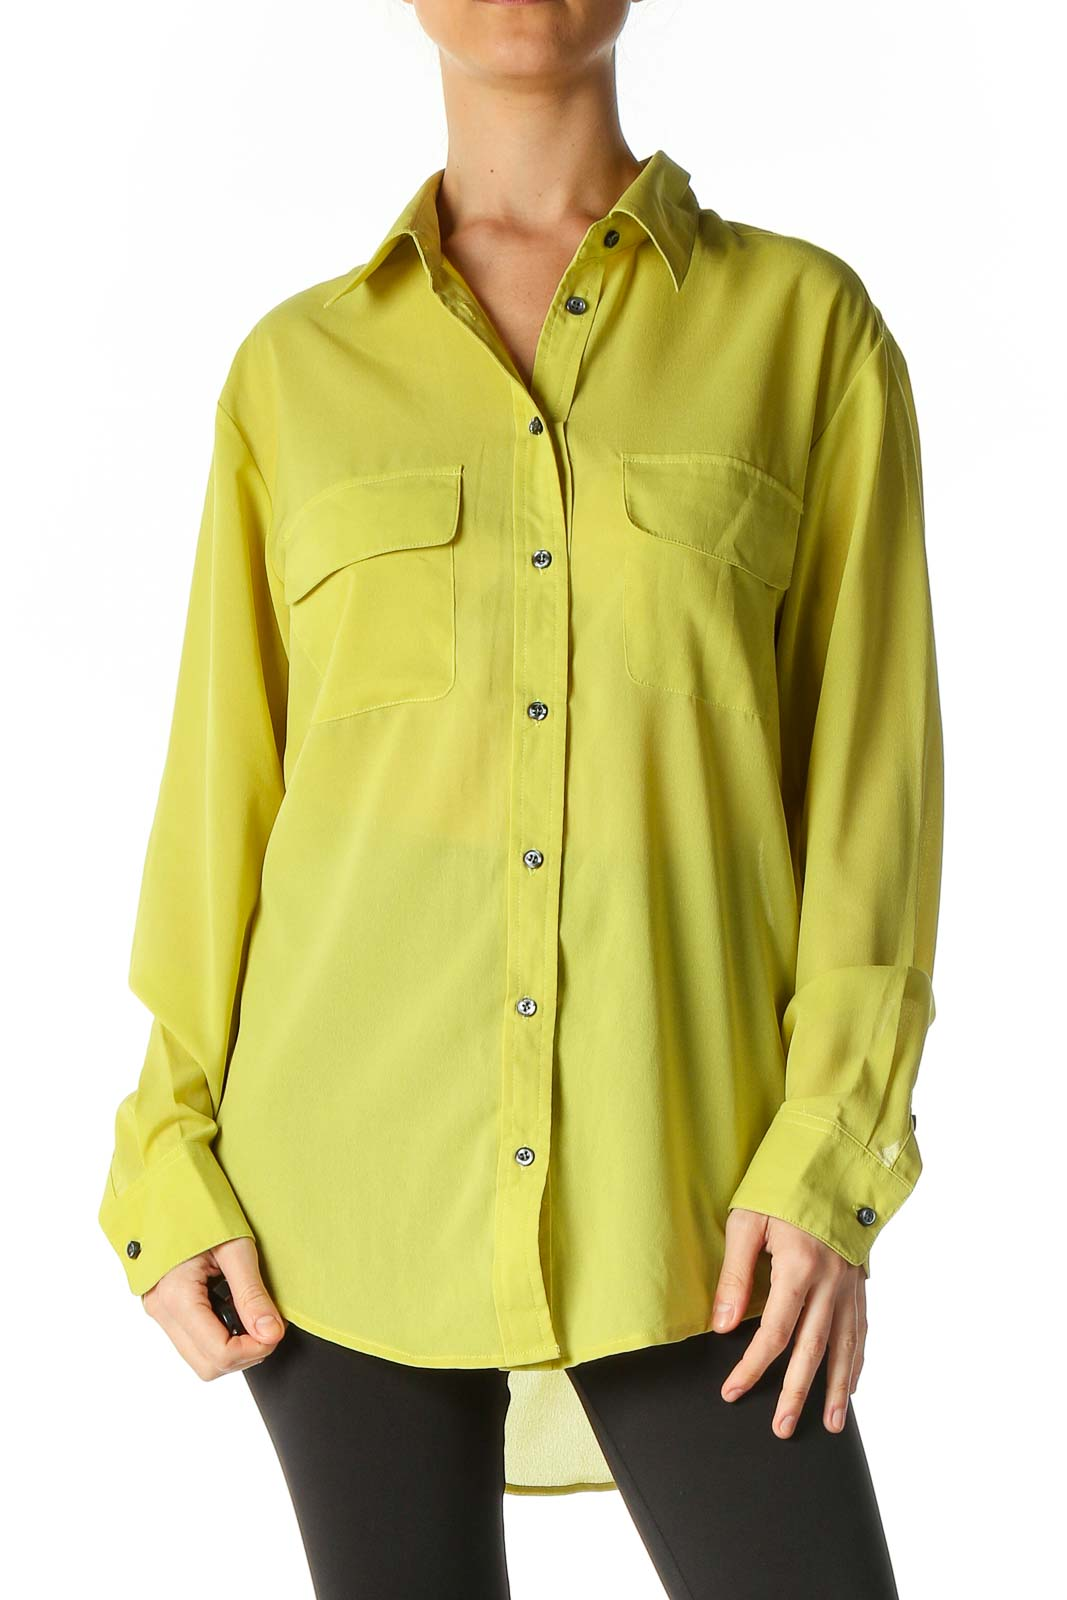 Green Solid Casual Shirt Front